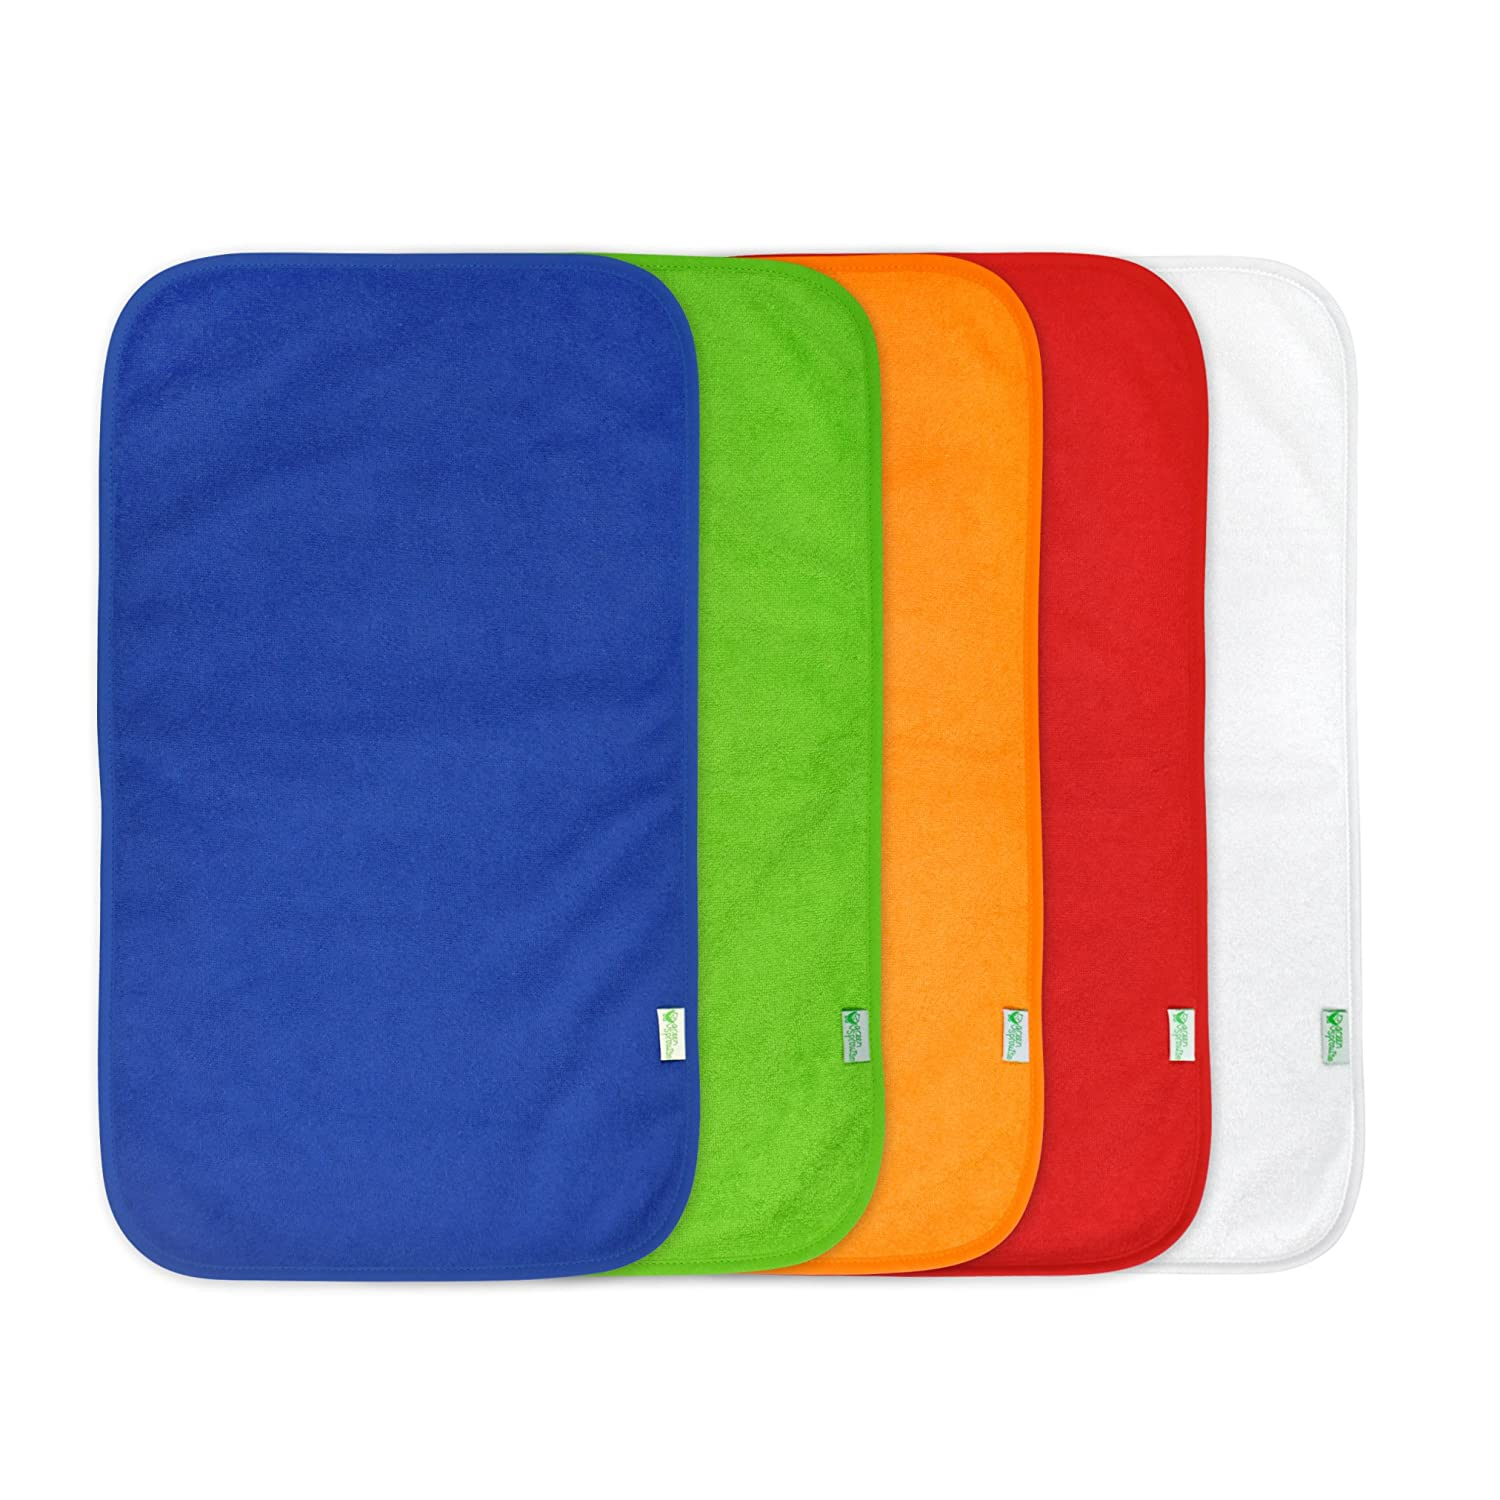 5 Count Waterproof protection Soft /& absorbent terry green sprouts Stay-Dry Burp Pads Machine washable | Ultimate protection from drools /& spit ups